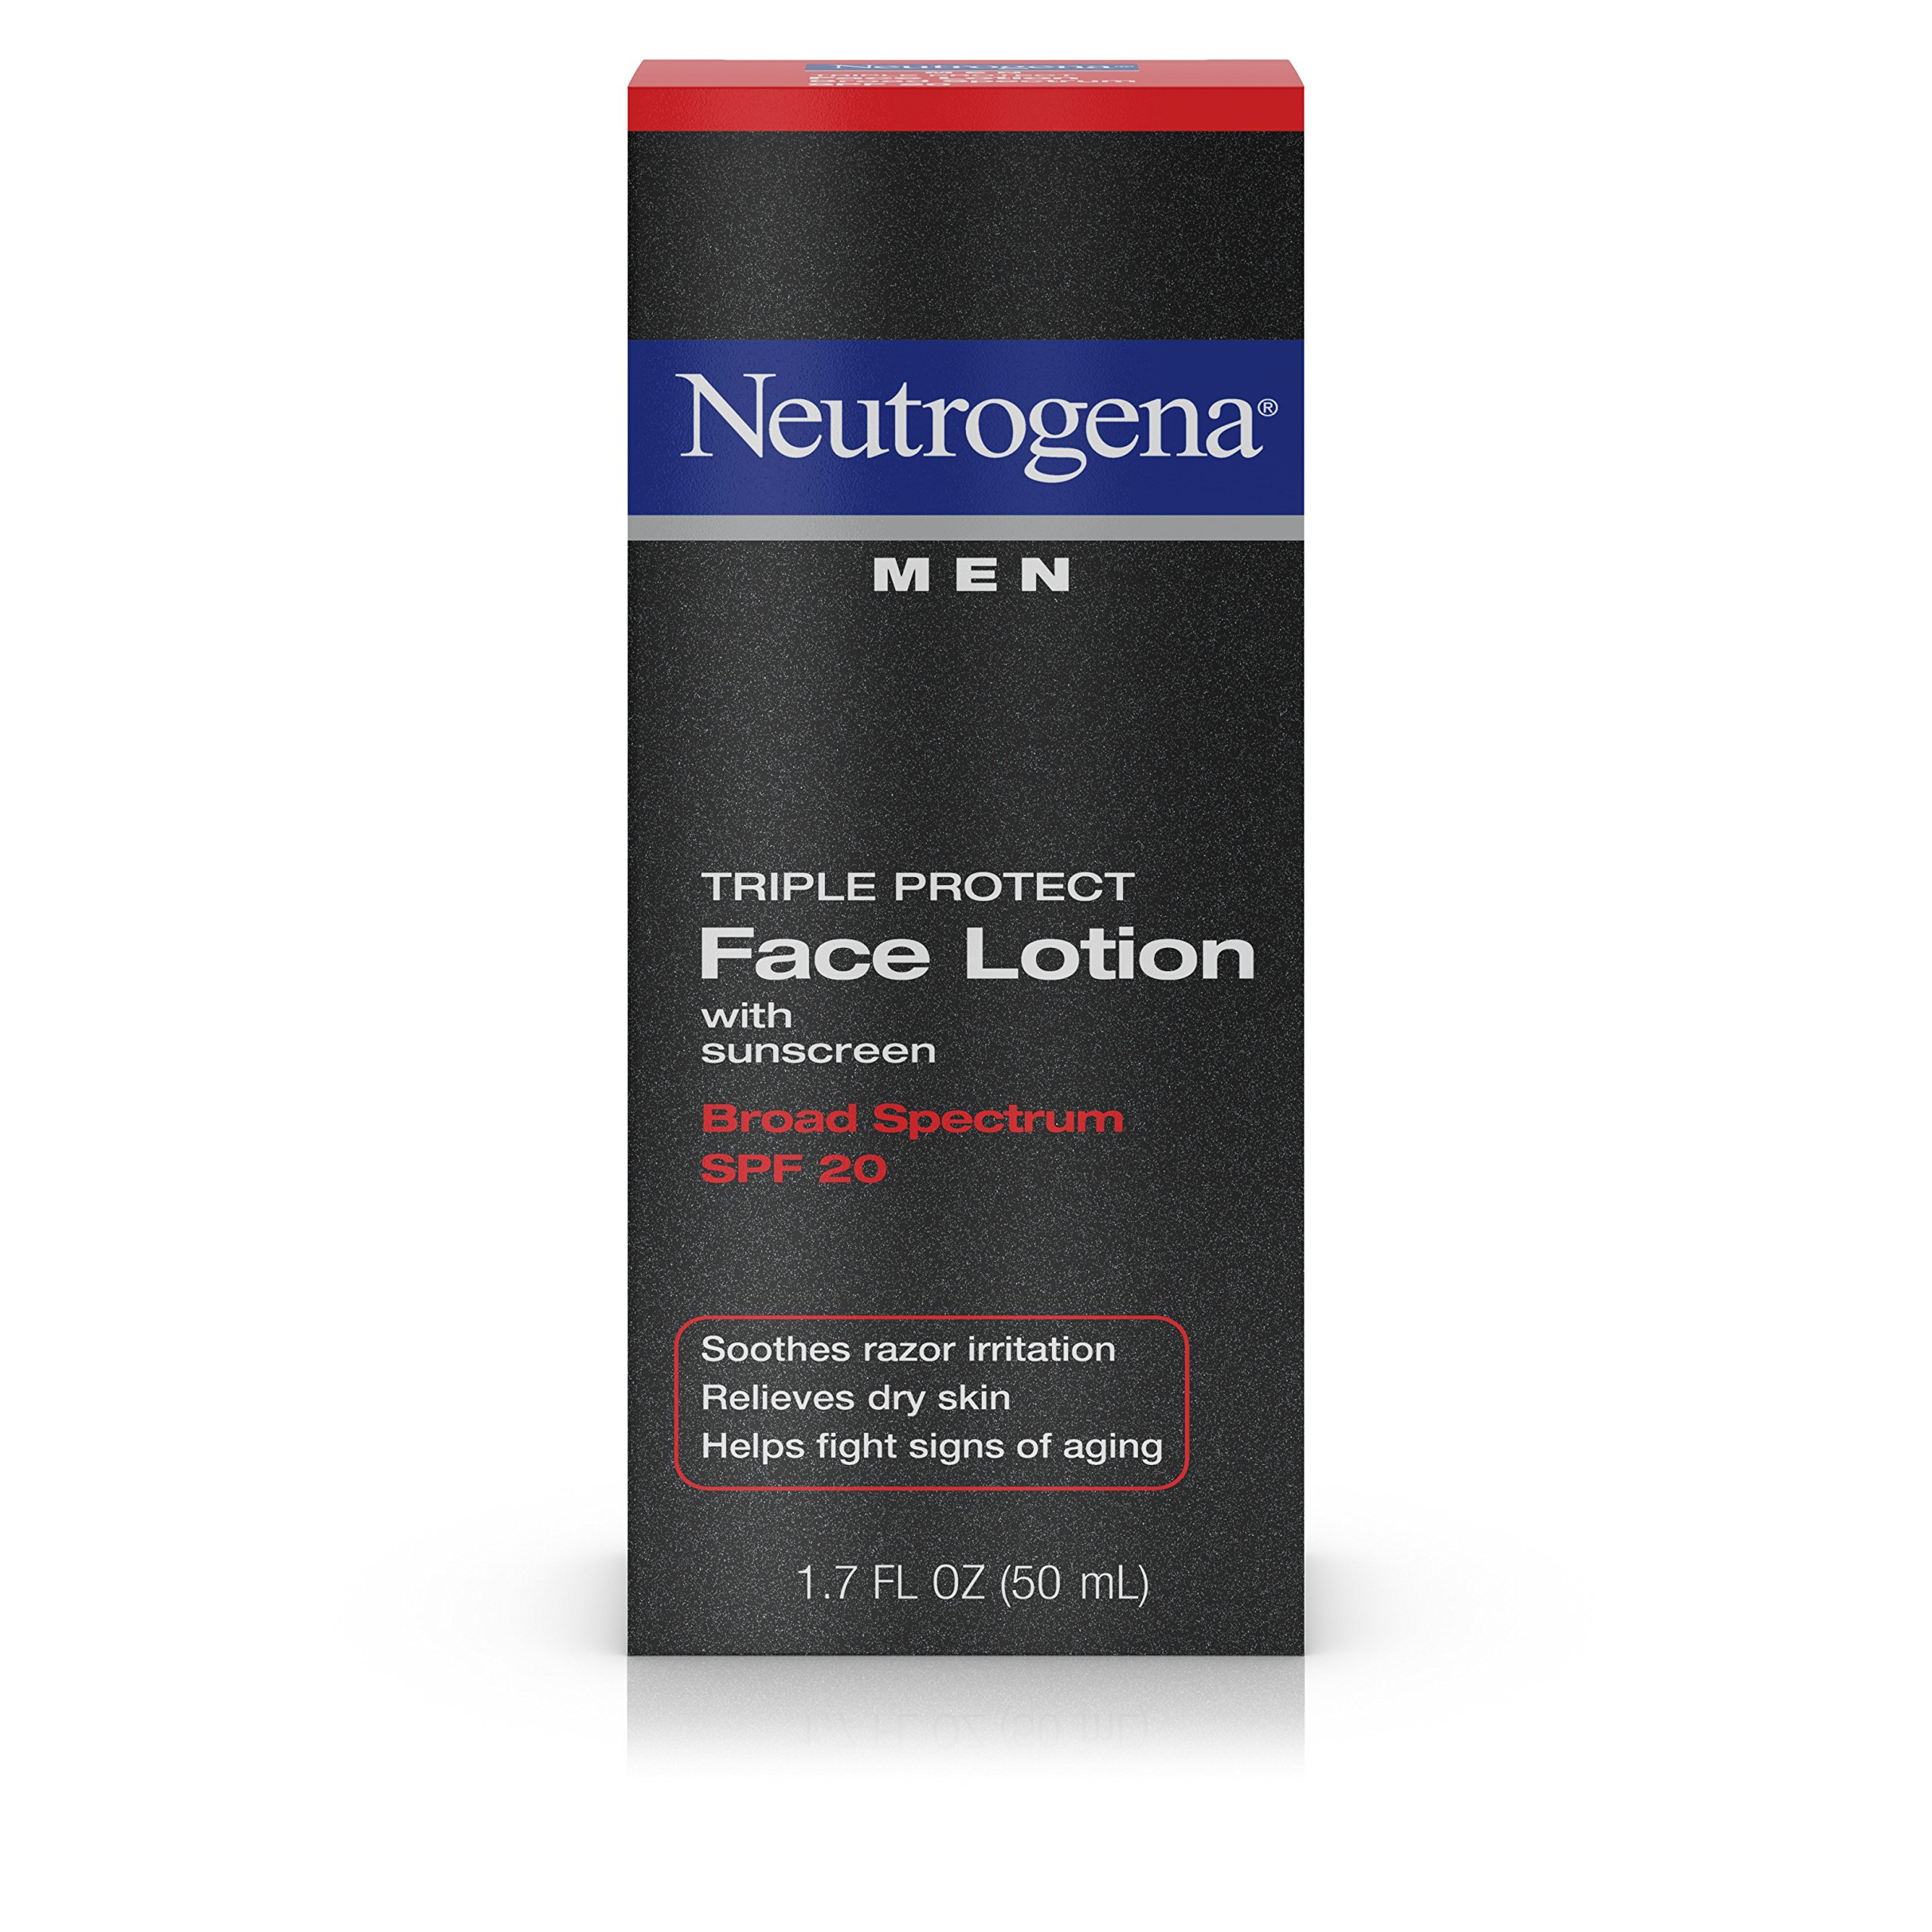 Neutrogena Triple Protect Men's Daily Face Lotion with Broad Spectrum SPF 20 Sunscreen, Moisturizer to Fight Aging Signs, Soothe Razor Irritation & Relieve Dry Skin, 1.7 fl. oz (Pack of 2)